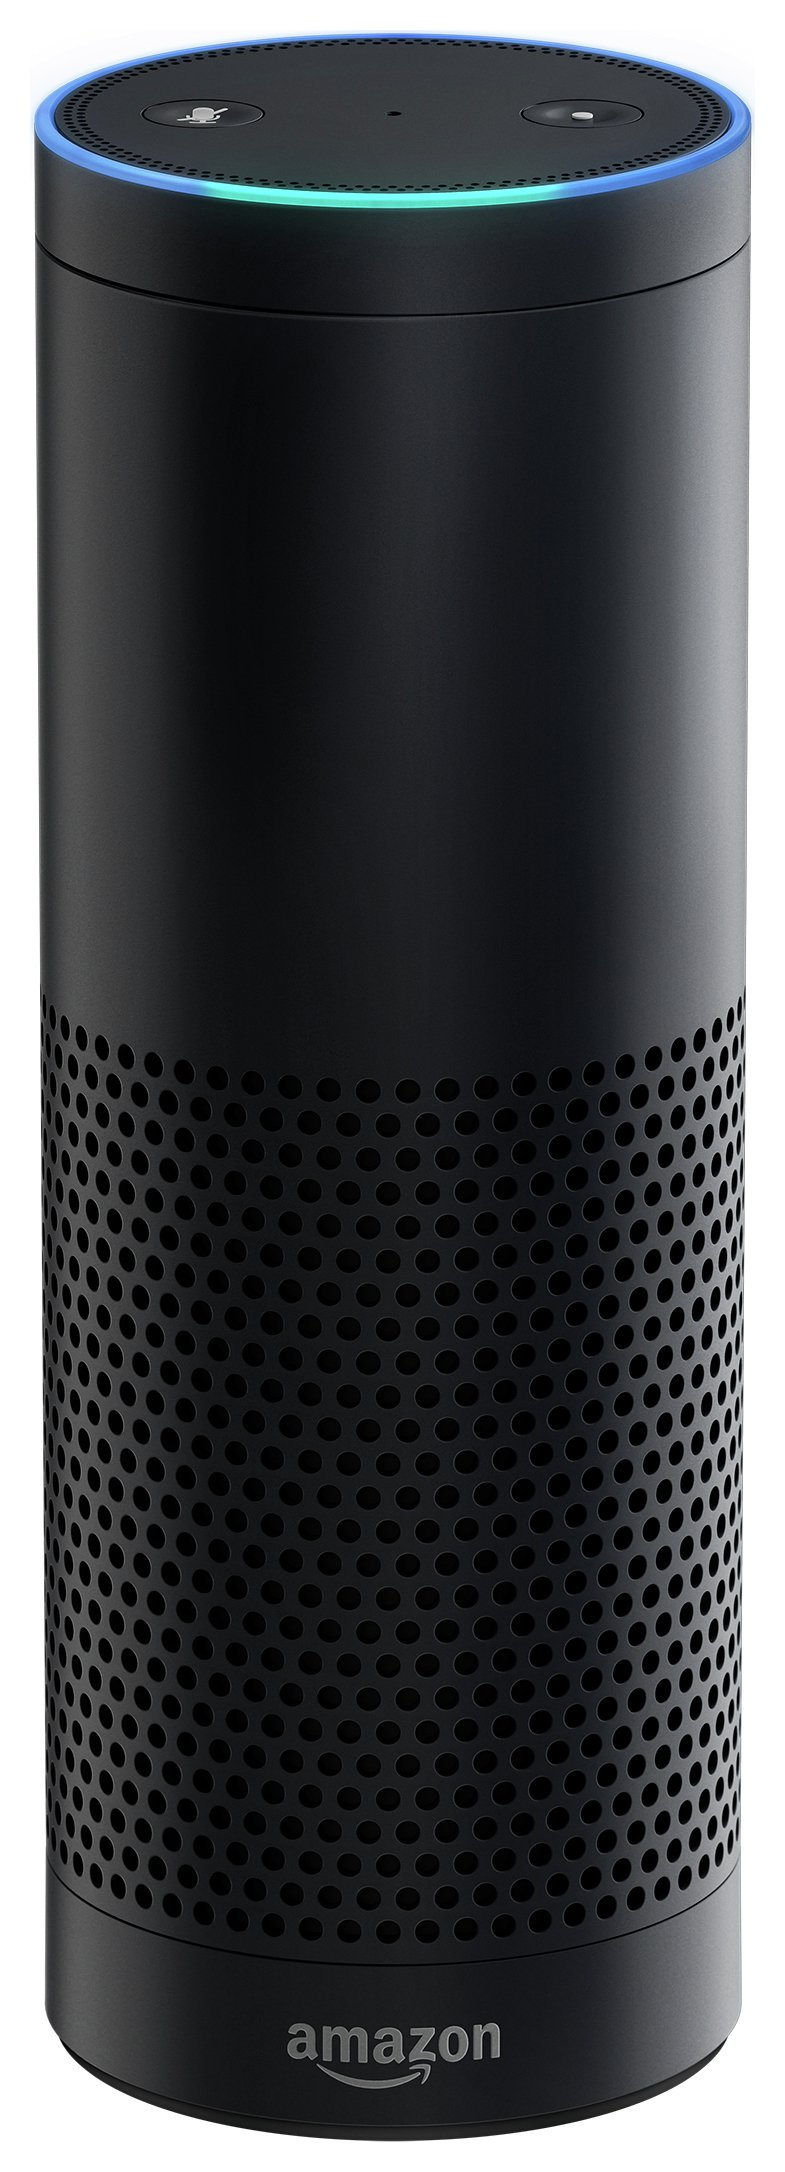 Image of Amazon Echo Multimedia Speaker with Voice Control - Black.